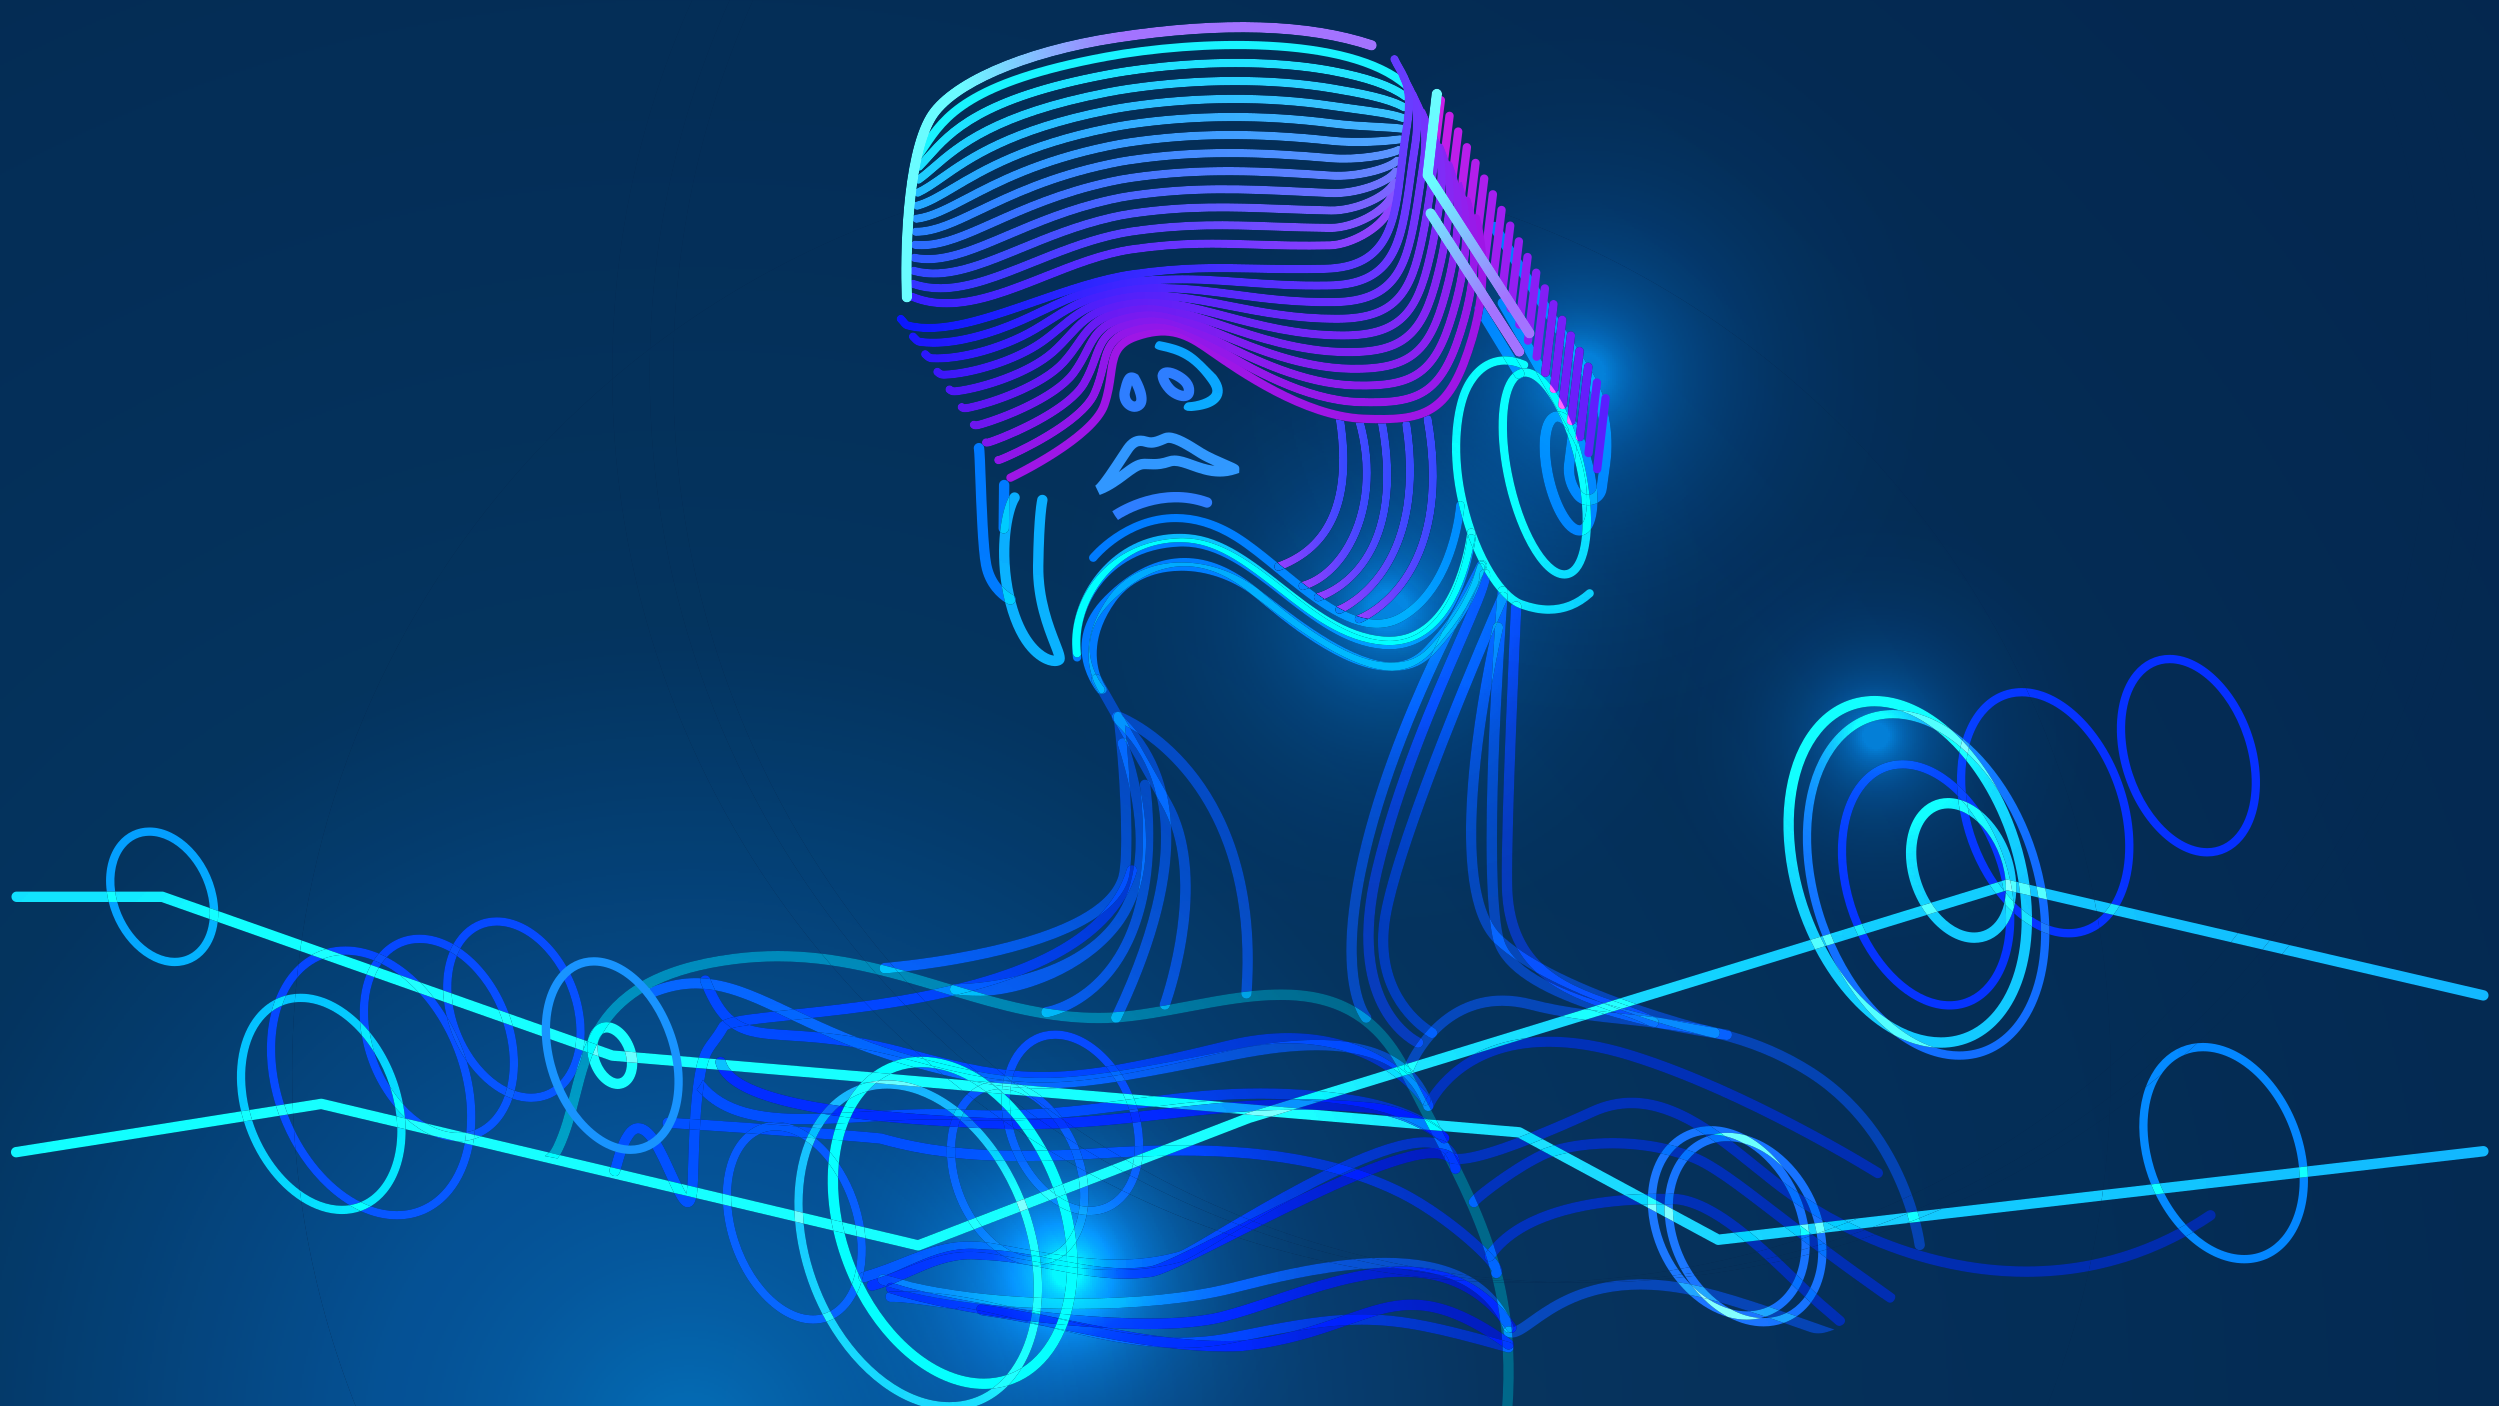 Image of a person wearing a VR headset surrounded by circles